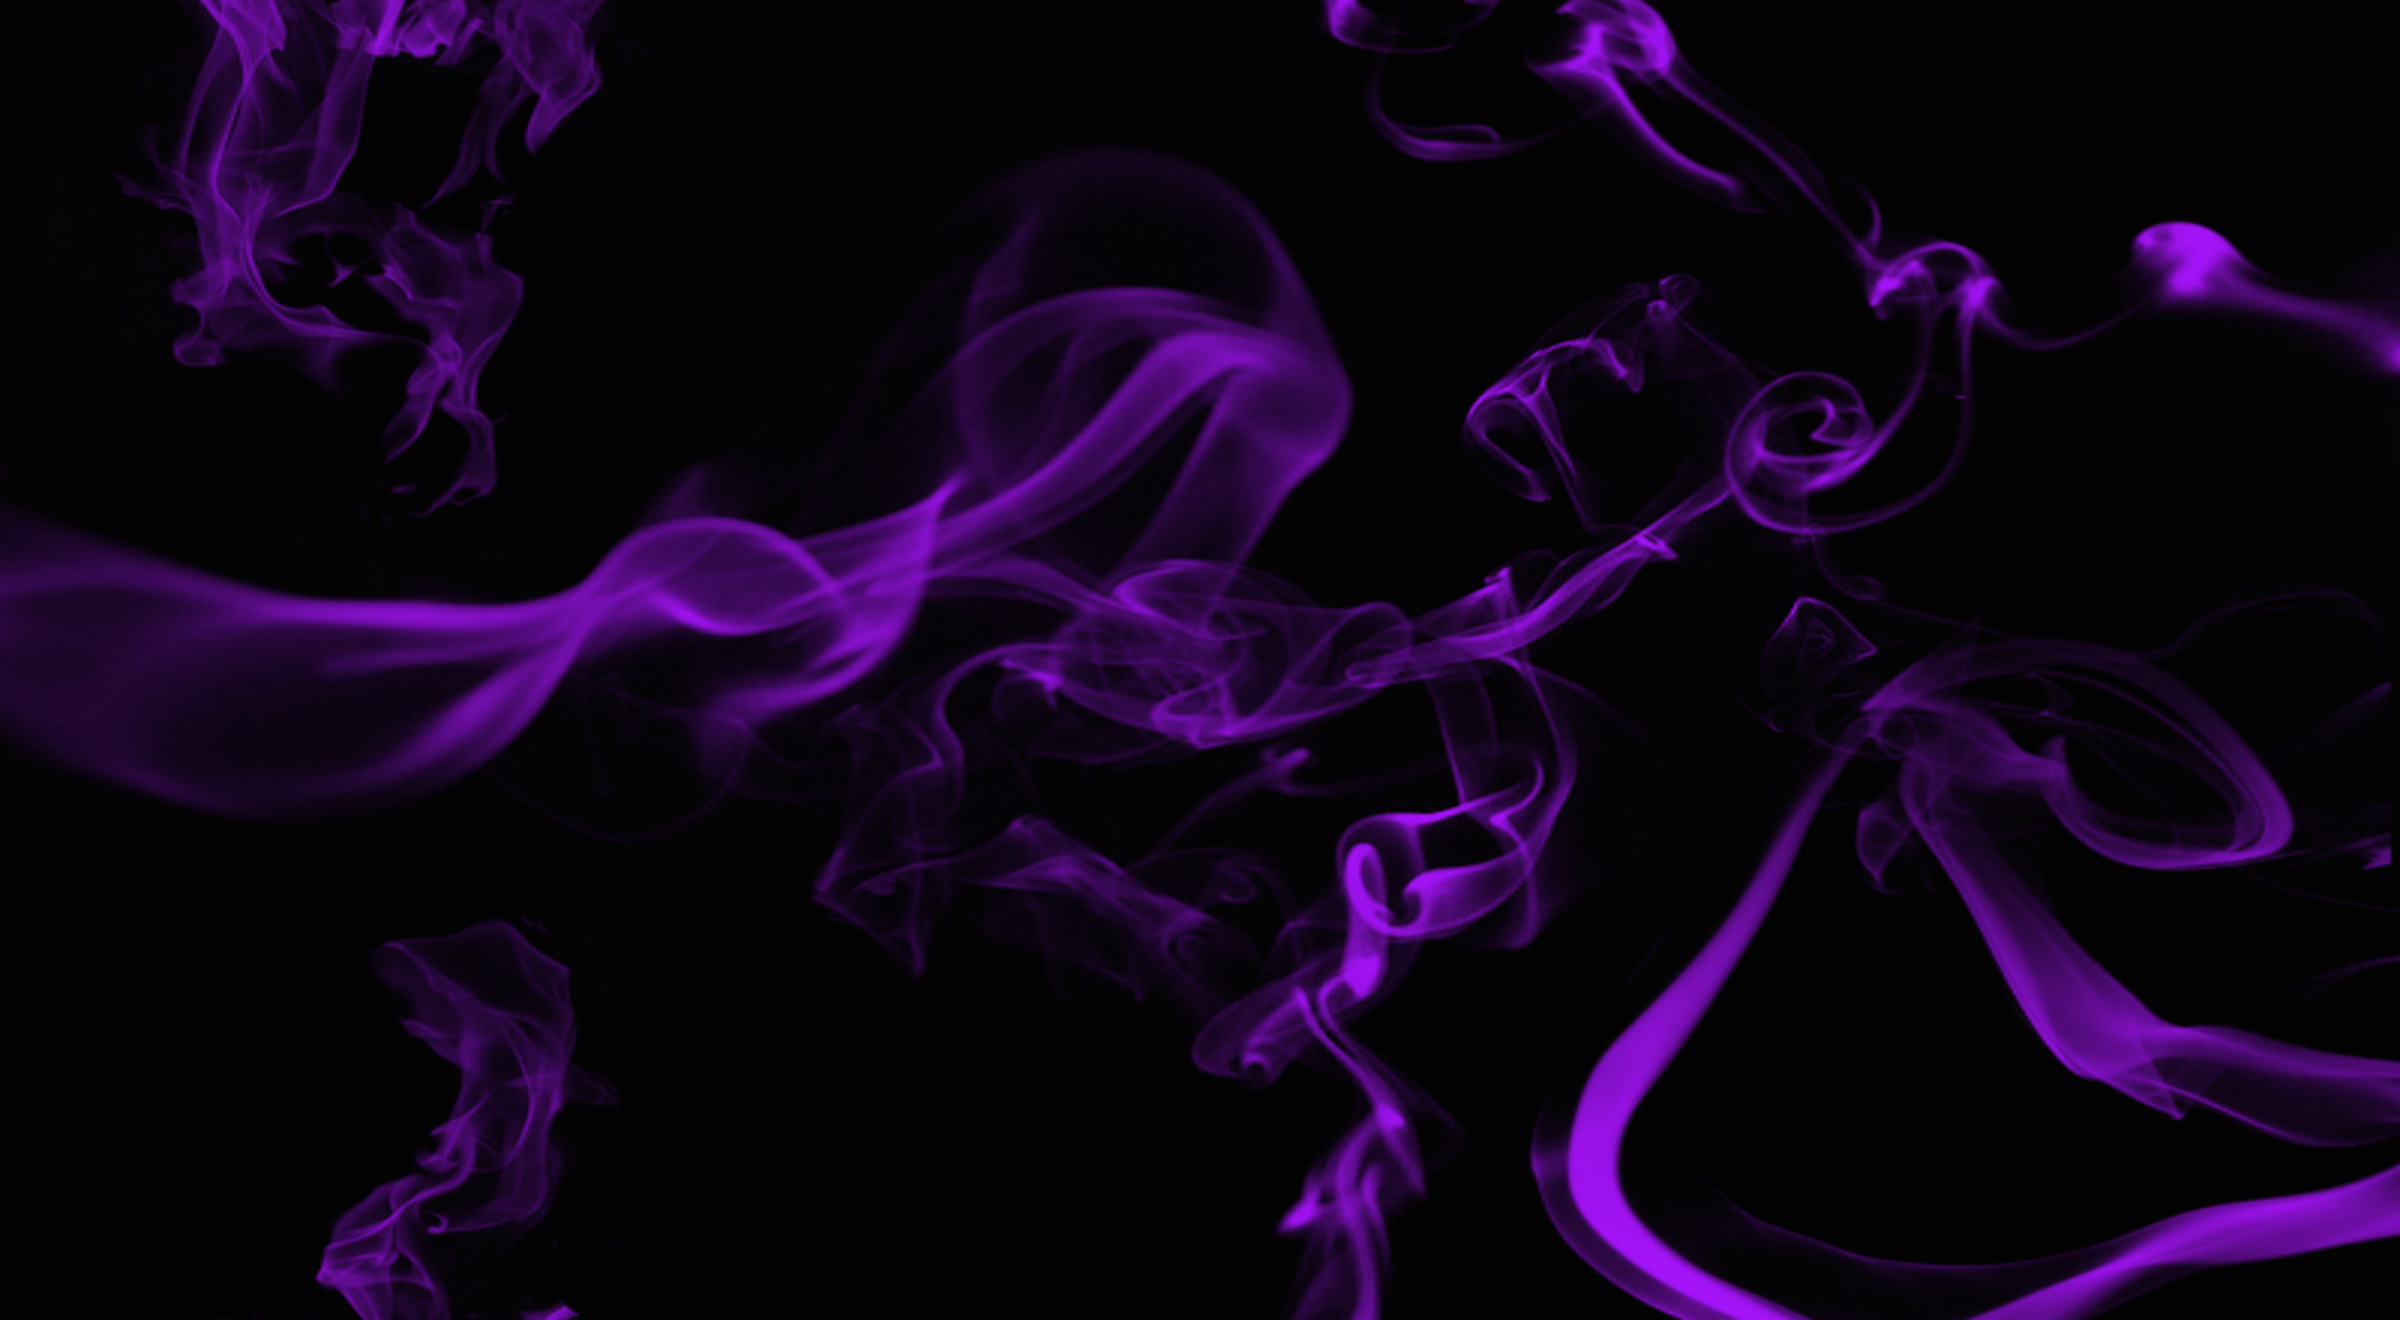 Violet Smoke Art Wallpapers: Purple Smoke HD Wallpaper